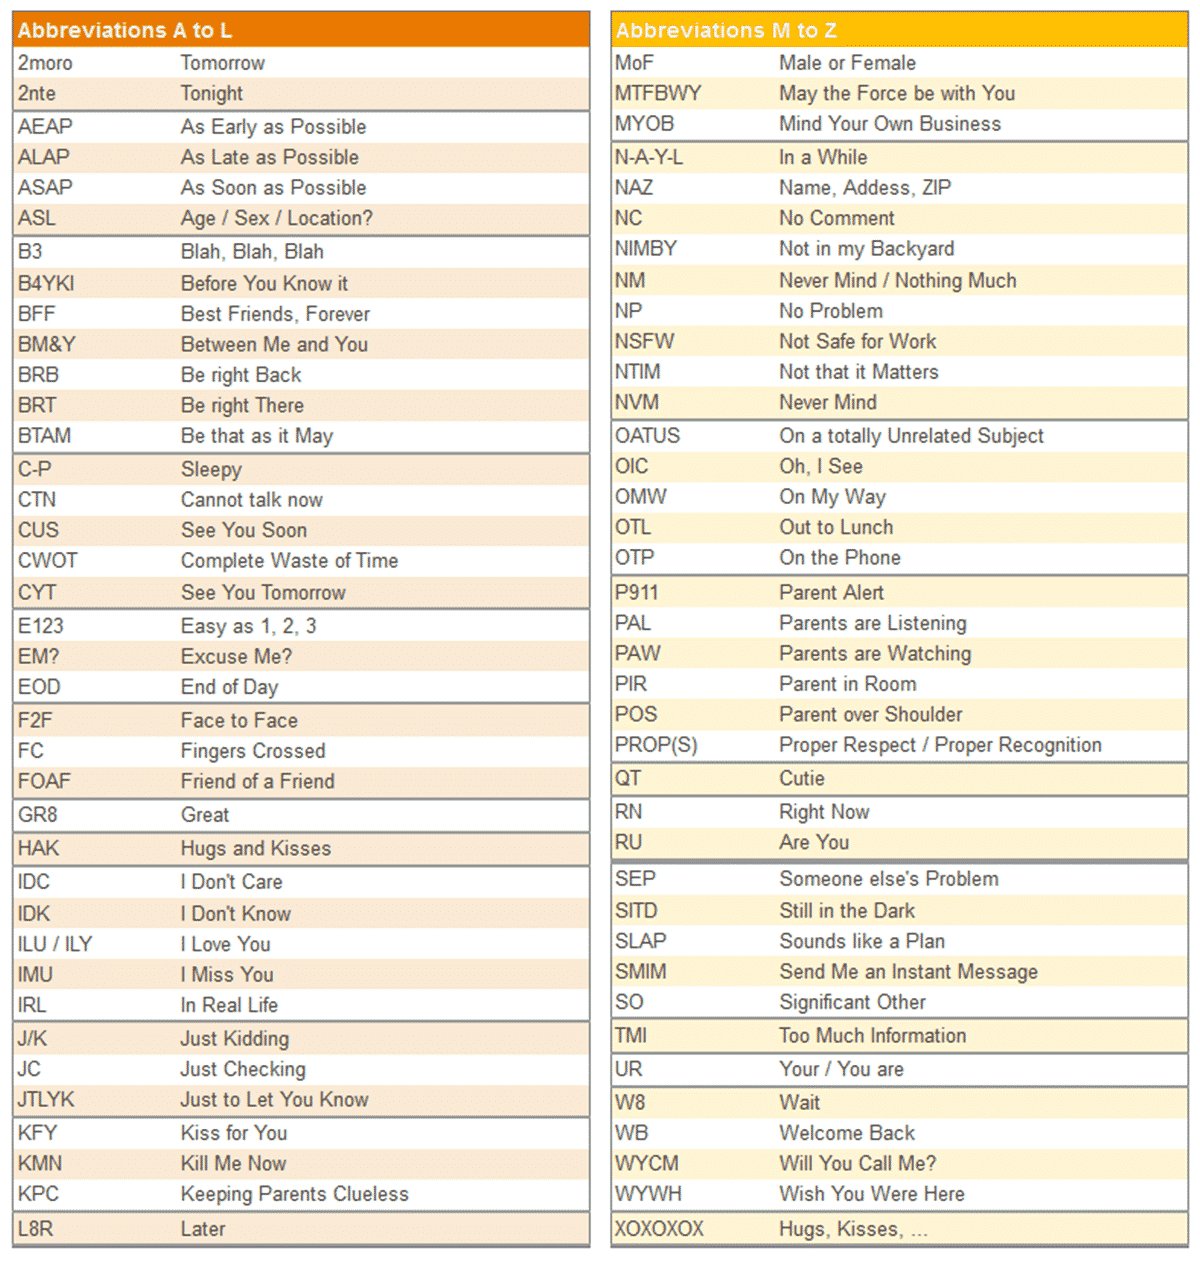 Texting Abbreviations and Chat Acronyms